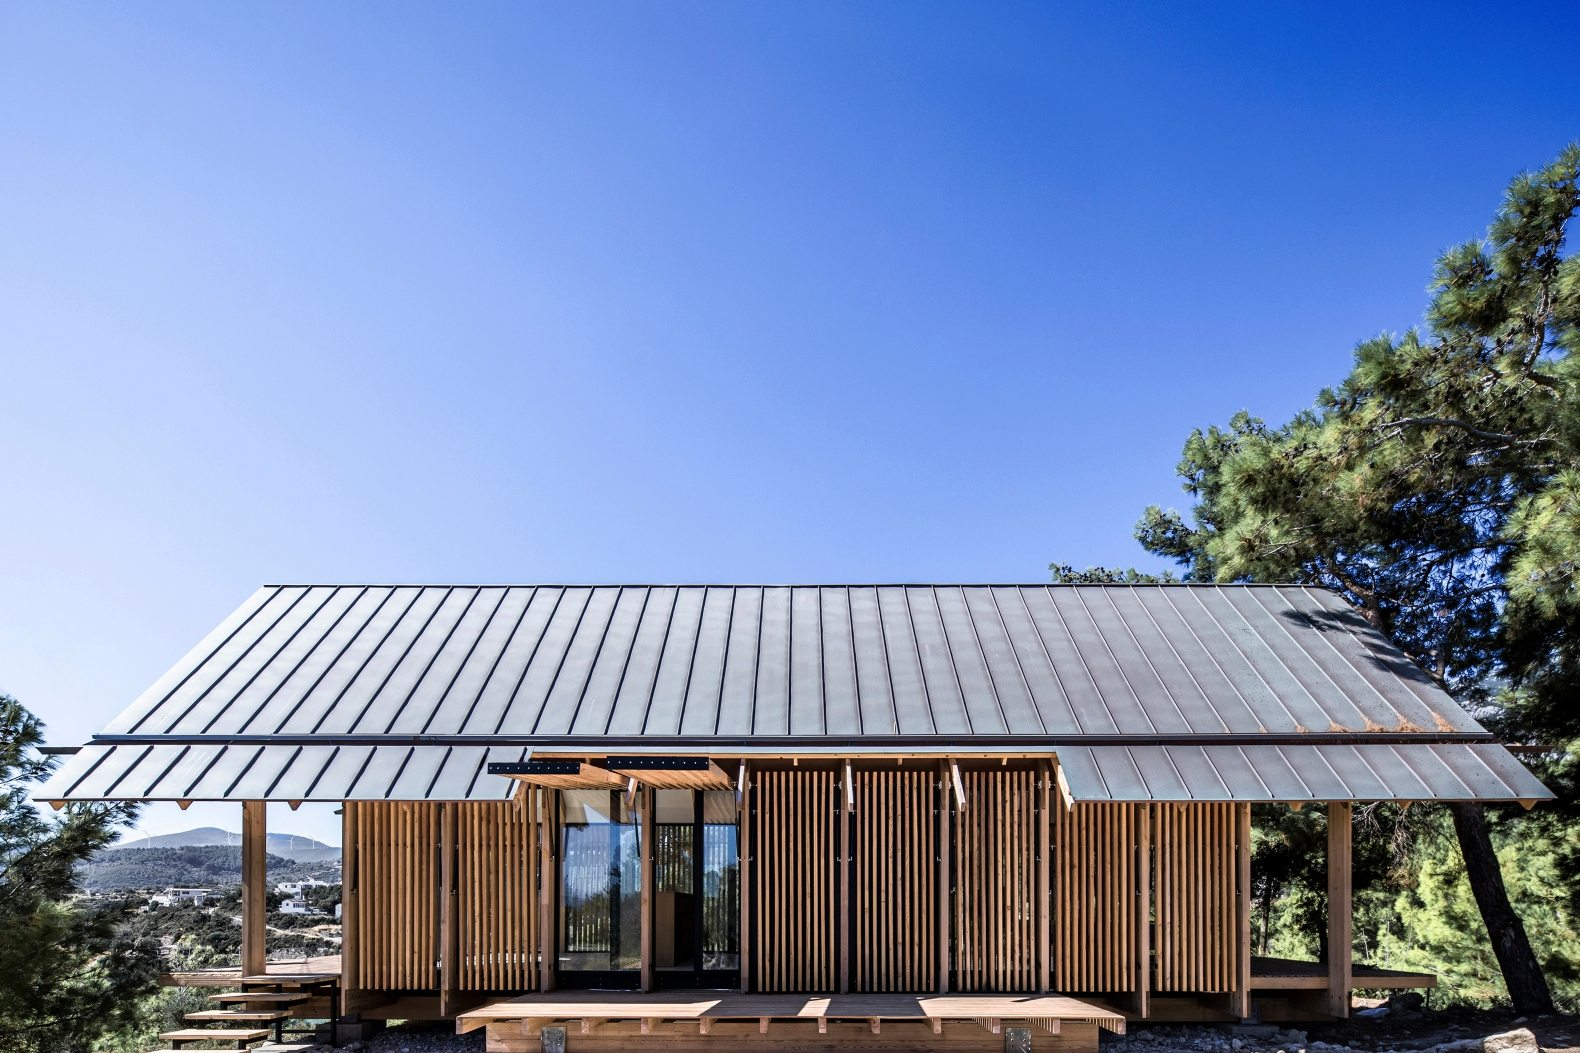 This Modular Off Grid Design Can Adapt To Any Landscape